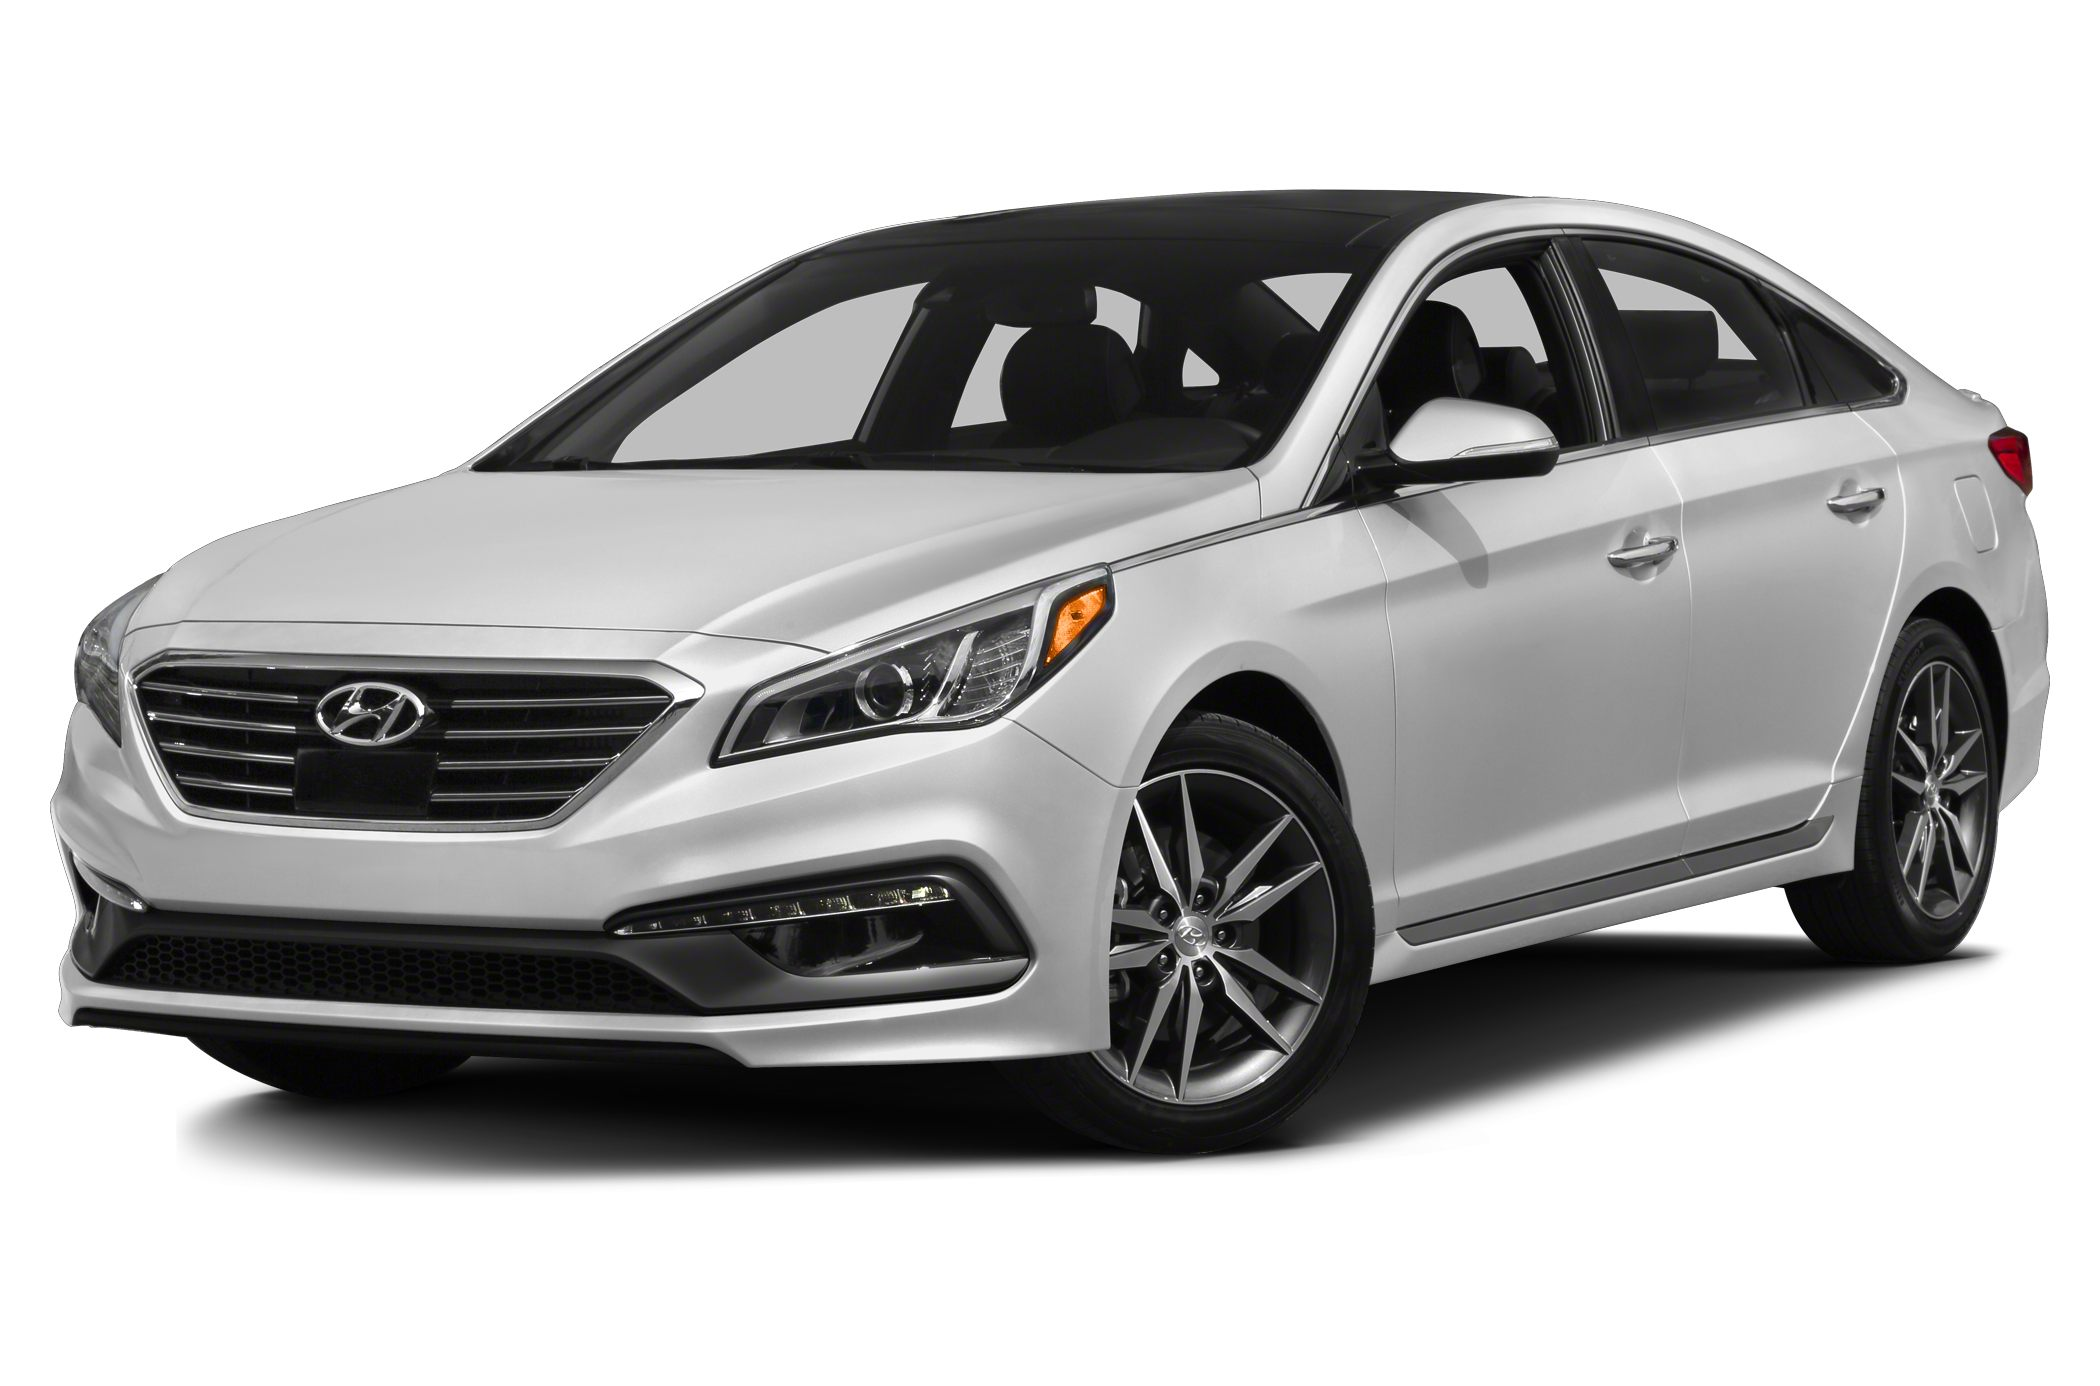 2015 Hyundai Sonata Sport Sedan for sale in Twin Falls for $22,382 with 1 miles.